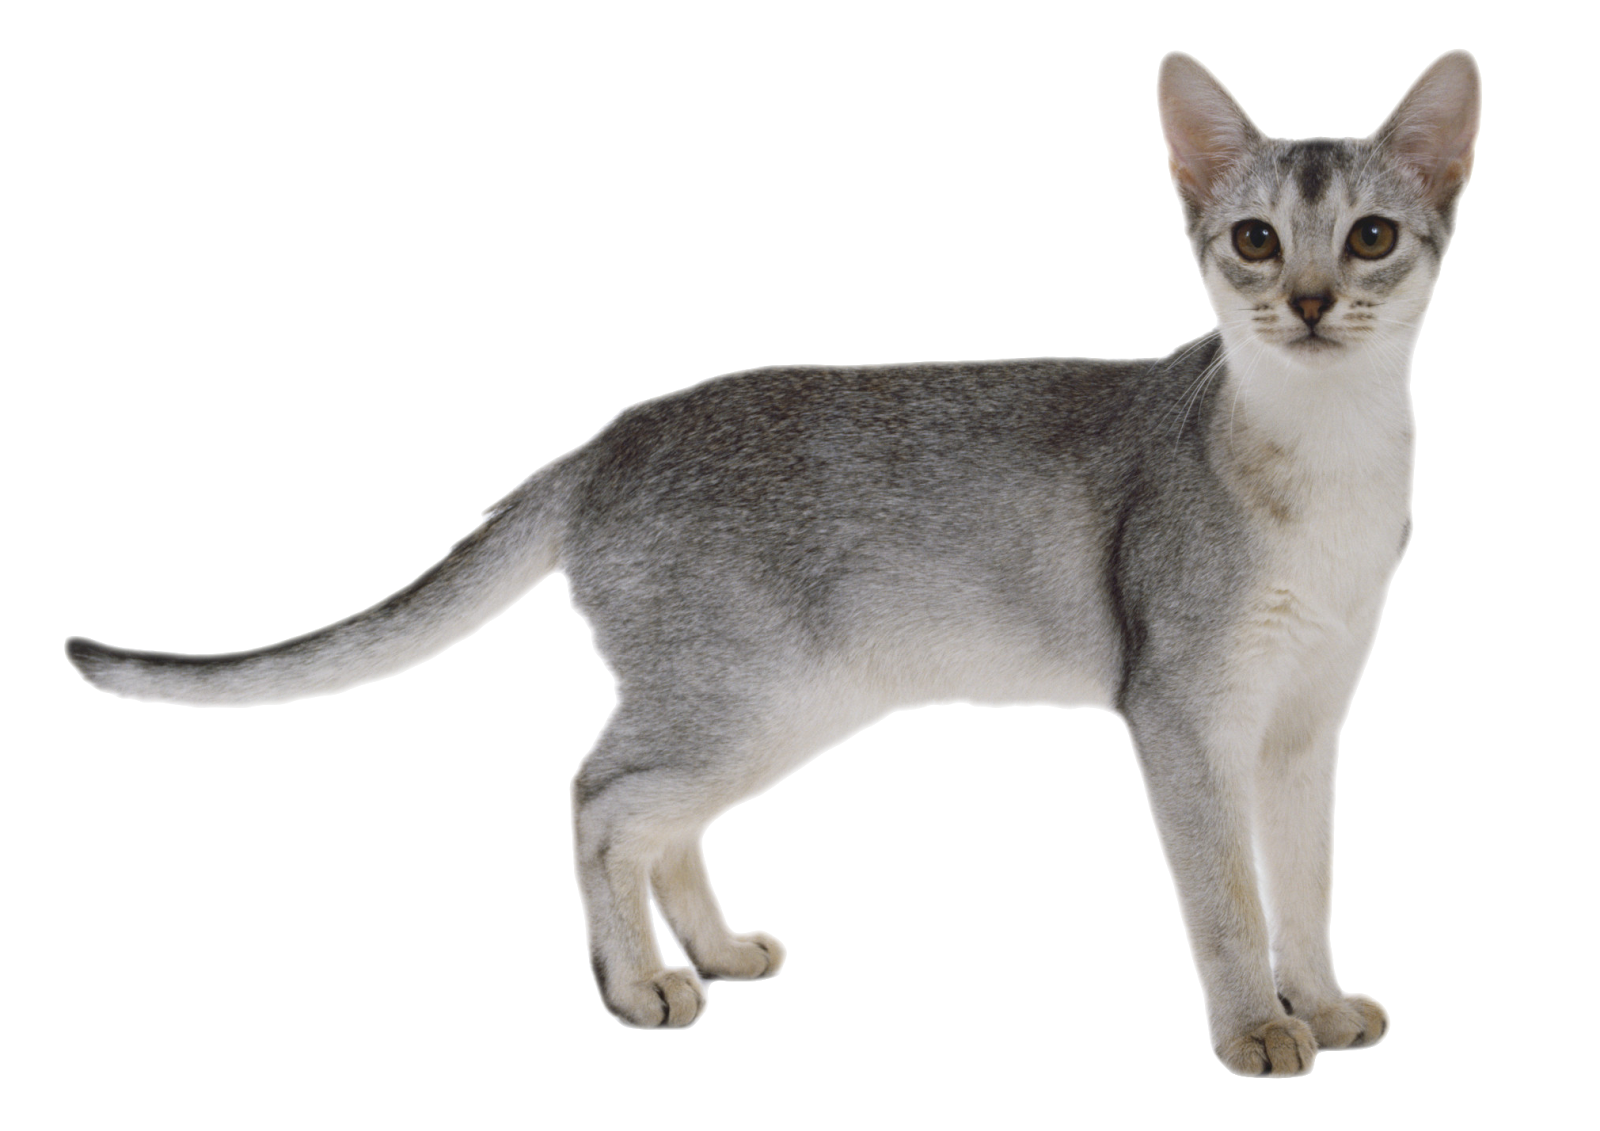 ΓΑΤΑ ΓΚΡΙ - FORMAT PNG TRANSPARENT ( CAT ) | Find images